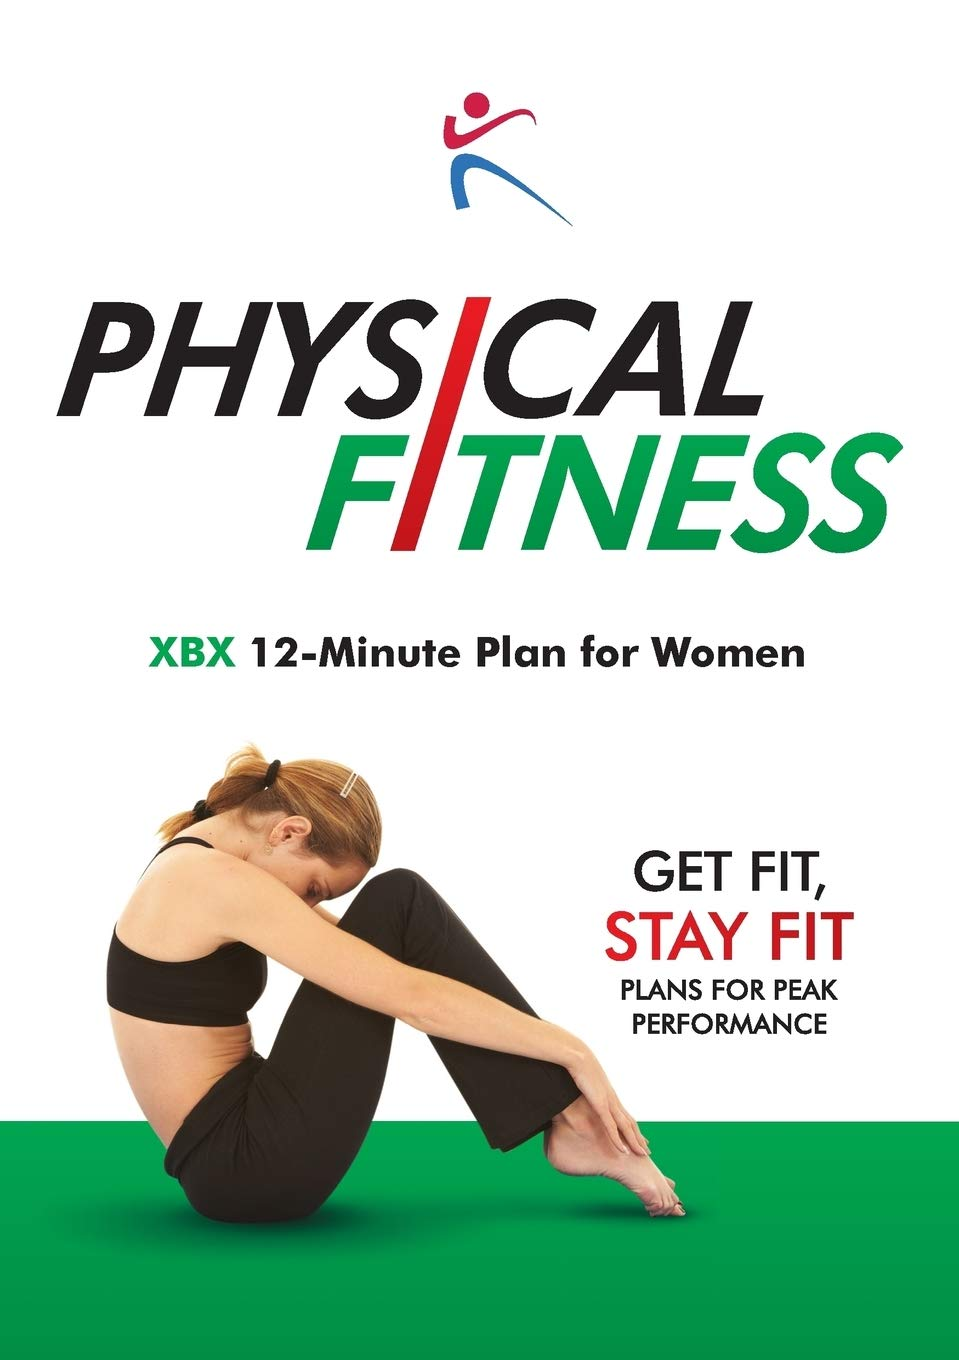 Image OfPhysical Fitness: XBX 12-Minute Plan For Women